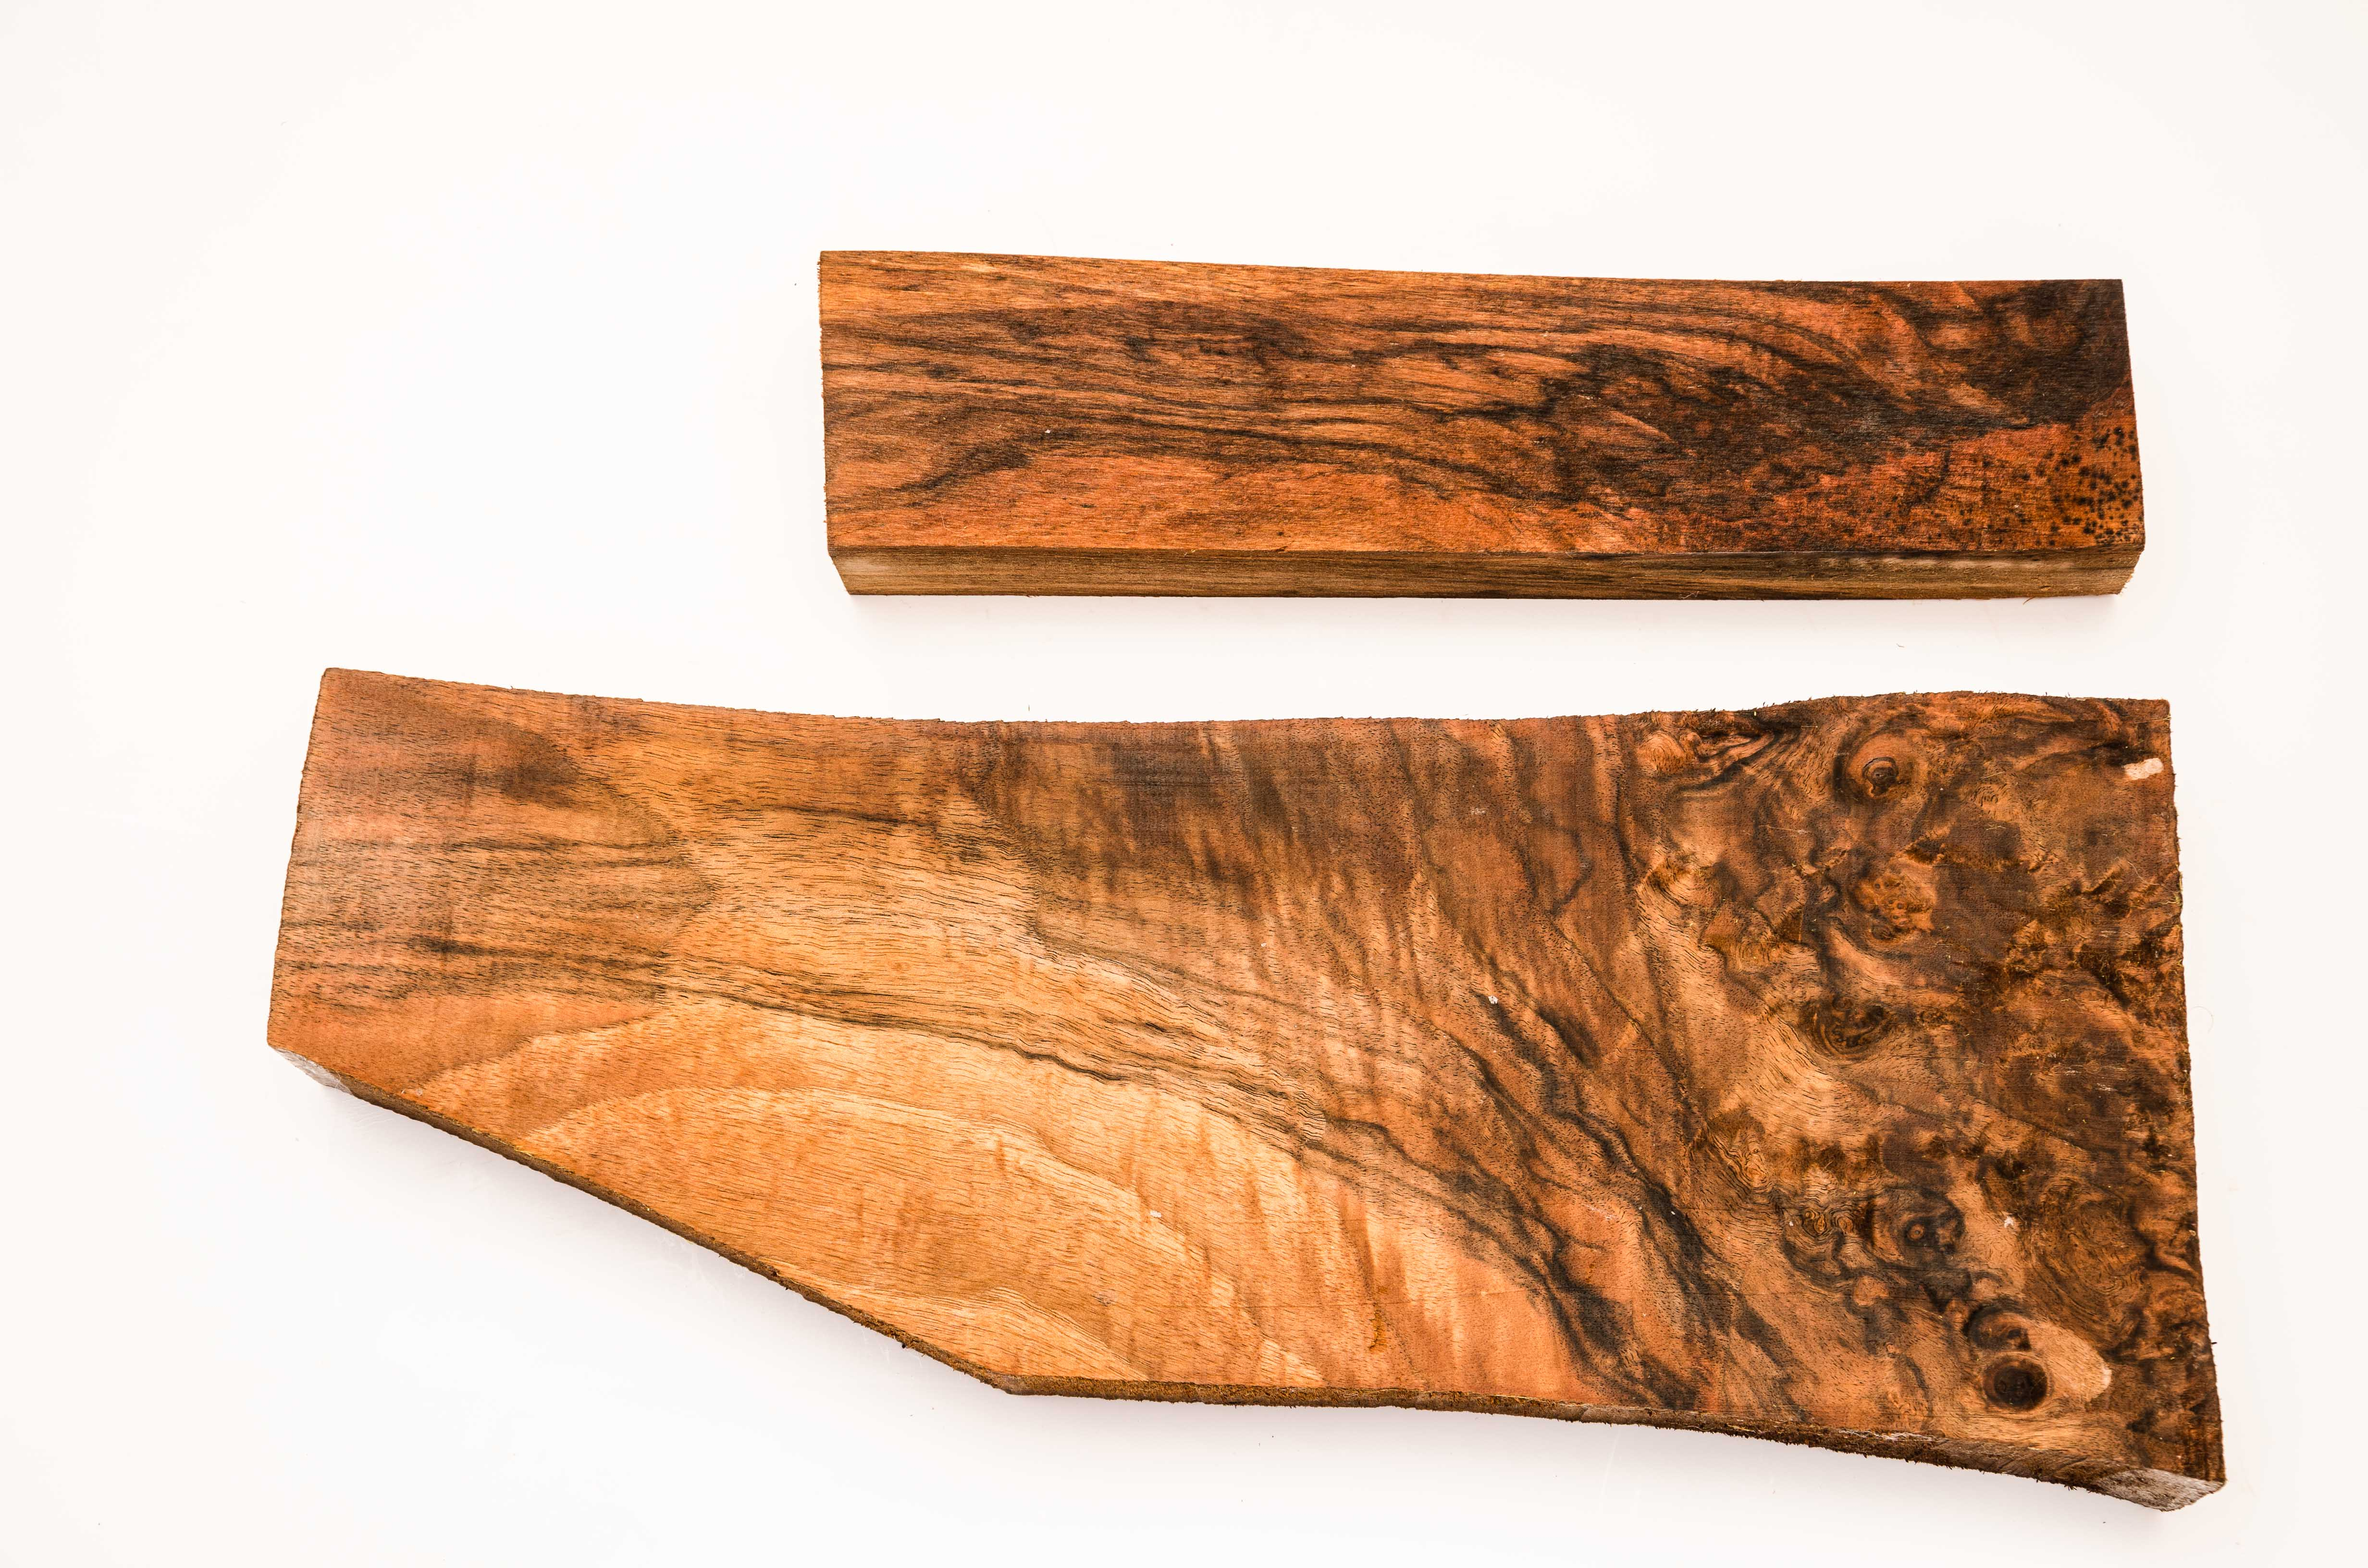 walnut_stock_blanks_for_guns_and_rifles-0388